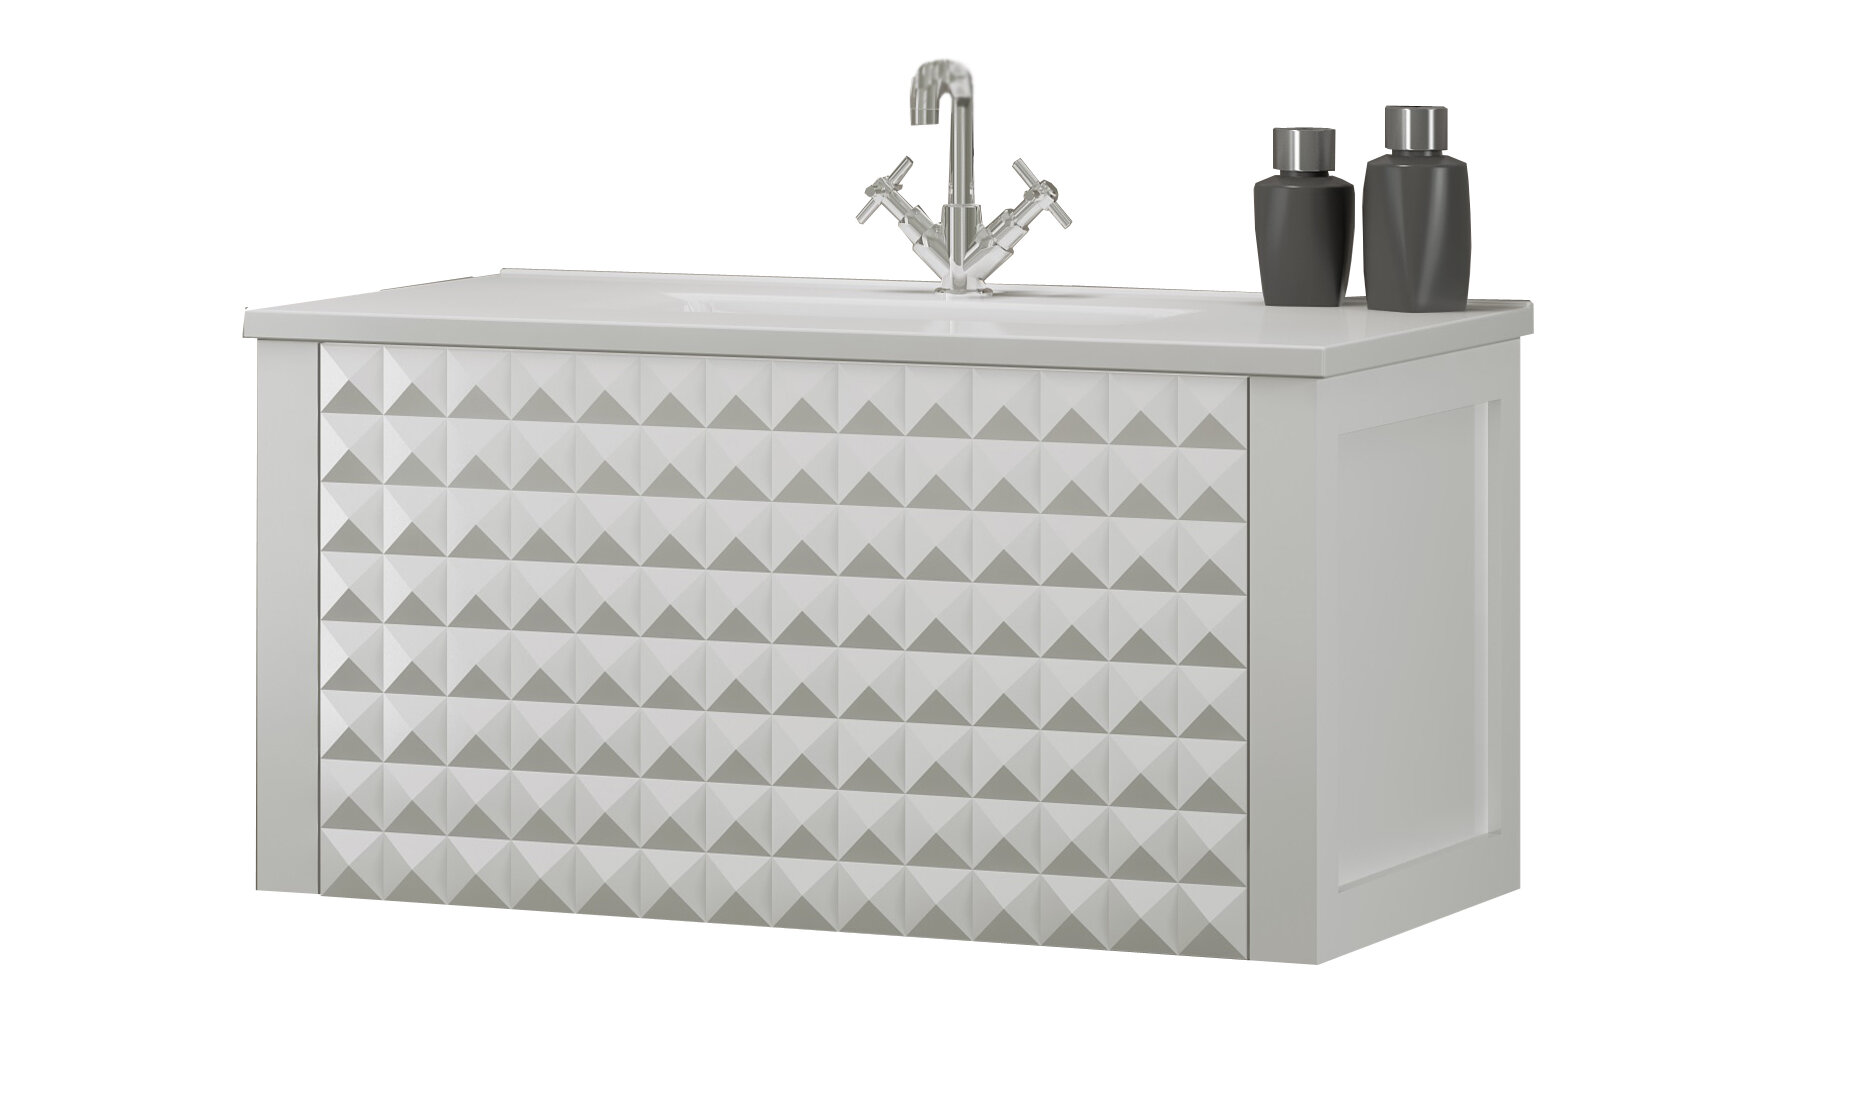 Ivy Bronx Westwood New Diamond 24 Wall Mounted Single Bathroom Vanity Set Wayfair